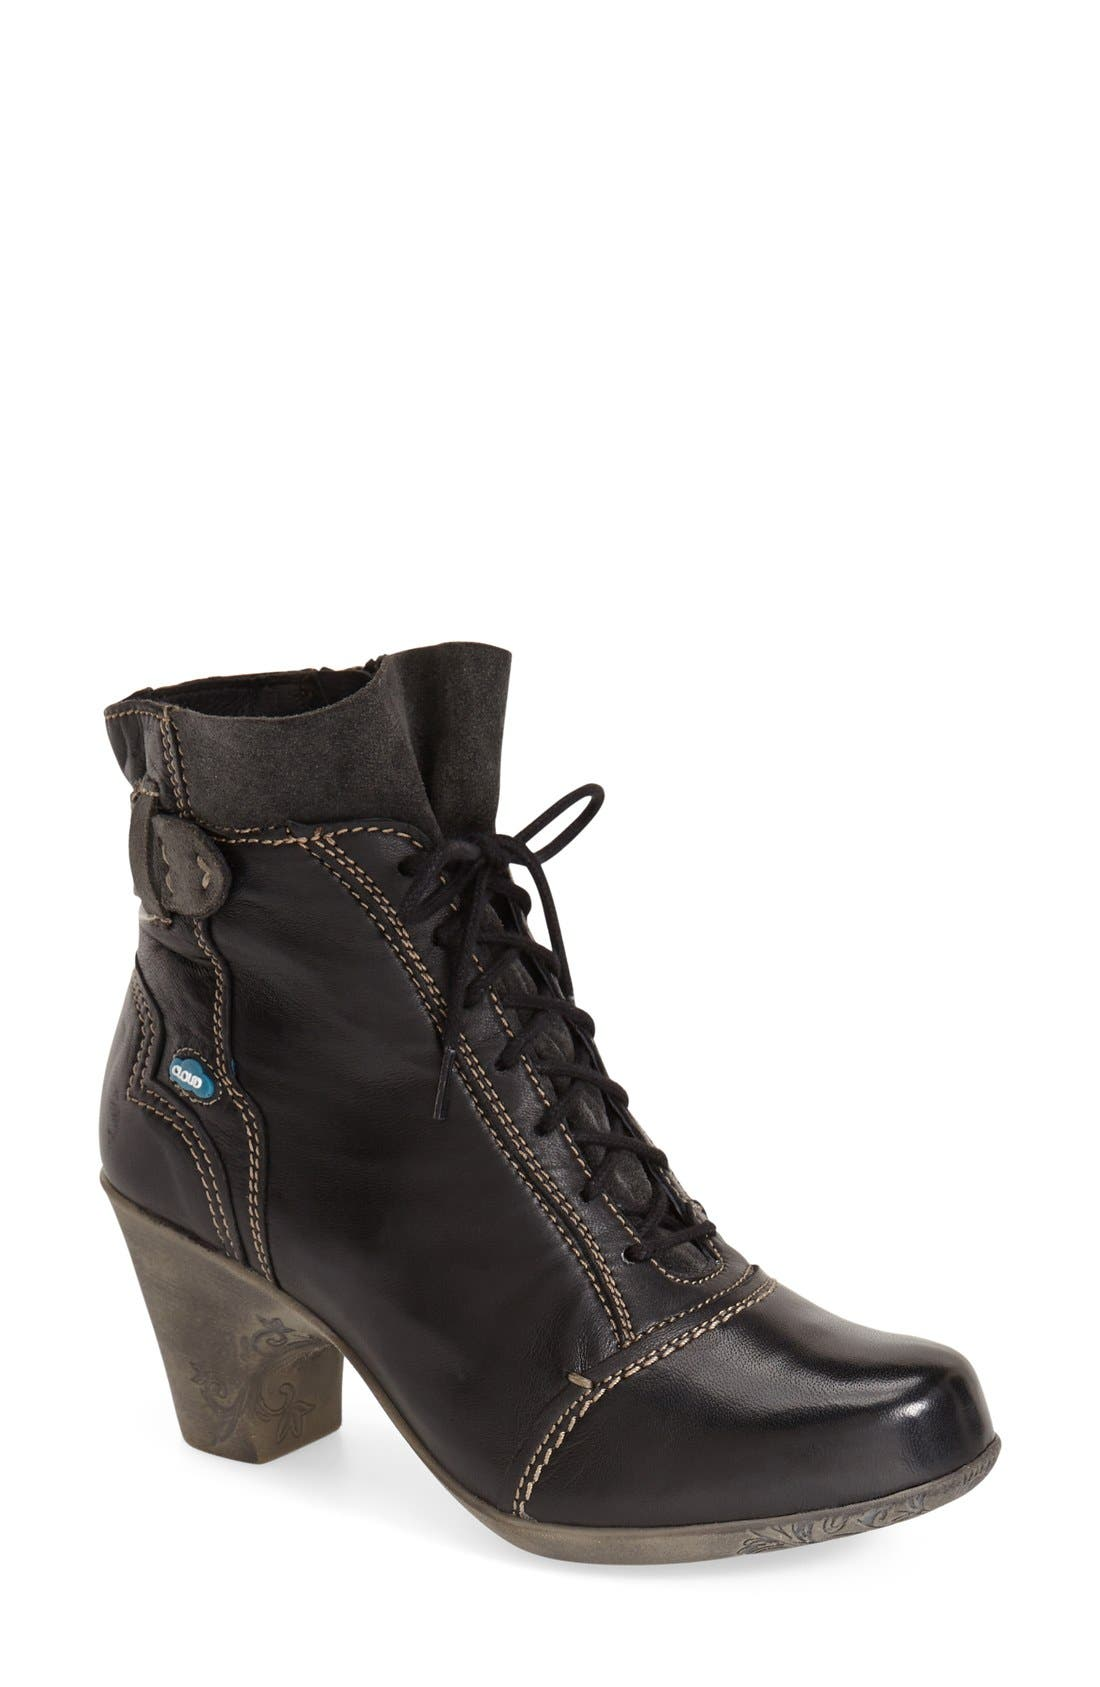 Alternate Image 1 Selected - CLOUD 'Jesse' Lace-Up Bootie (Women)